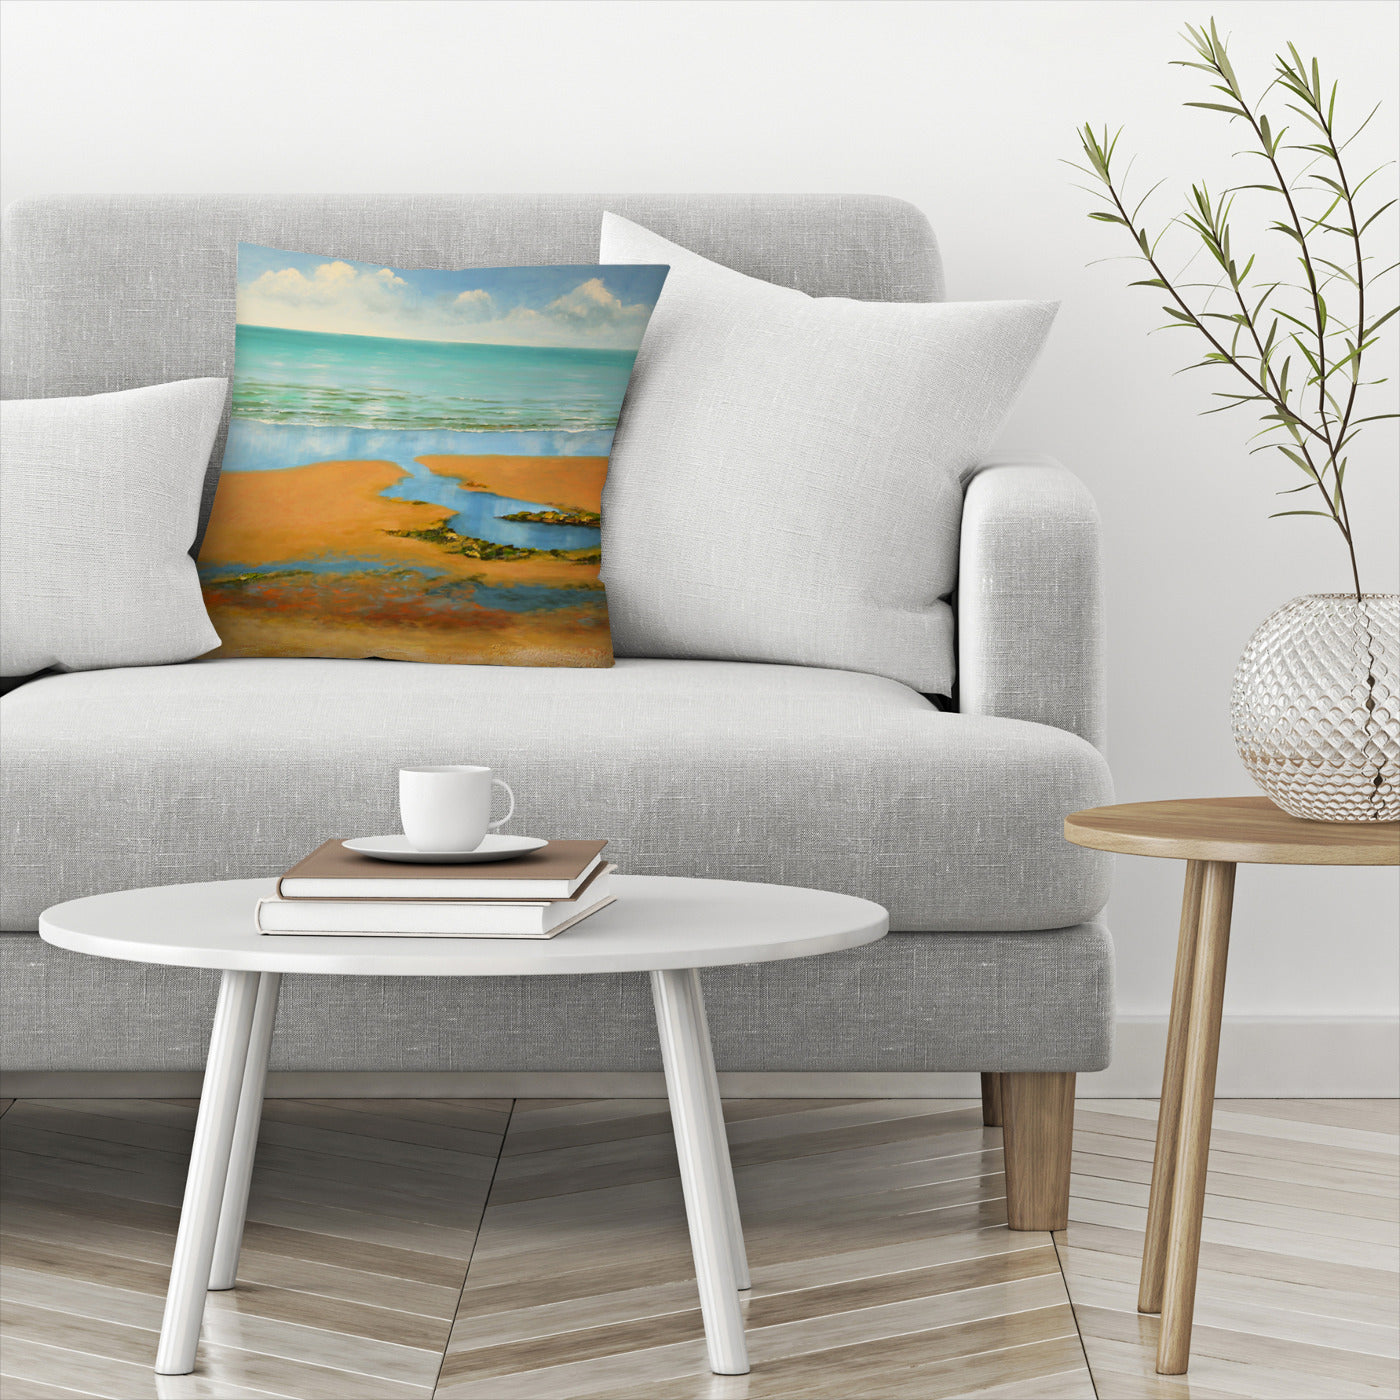 Calm Beach by Sandra Francis Decorative Pillow - Decorative Pillow - Americanflat